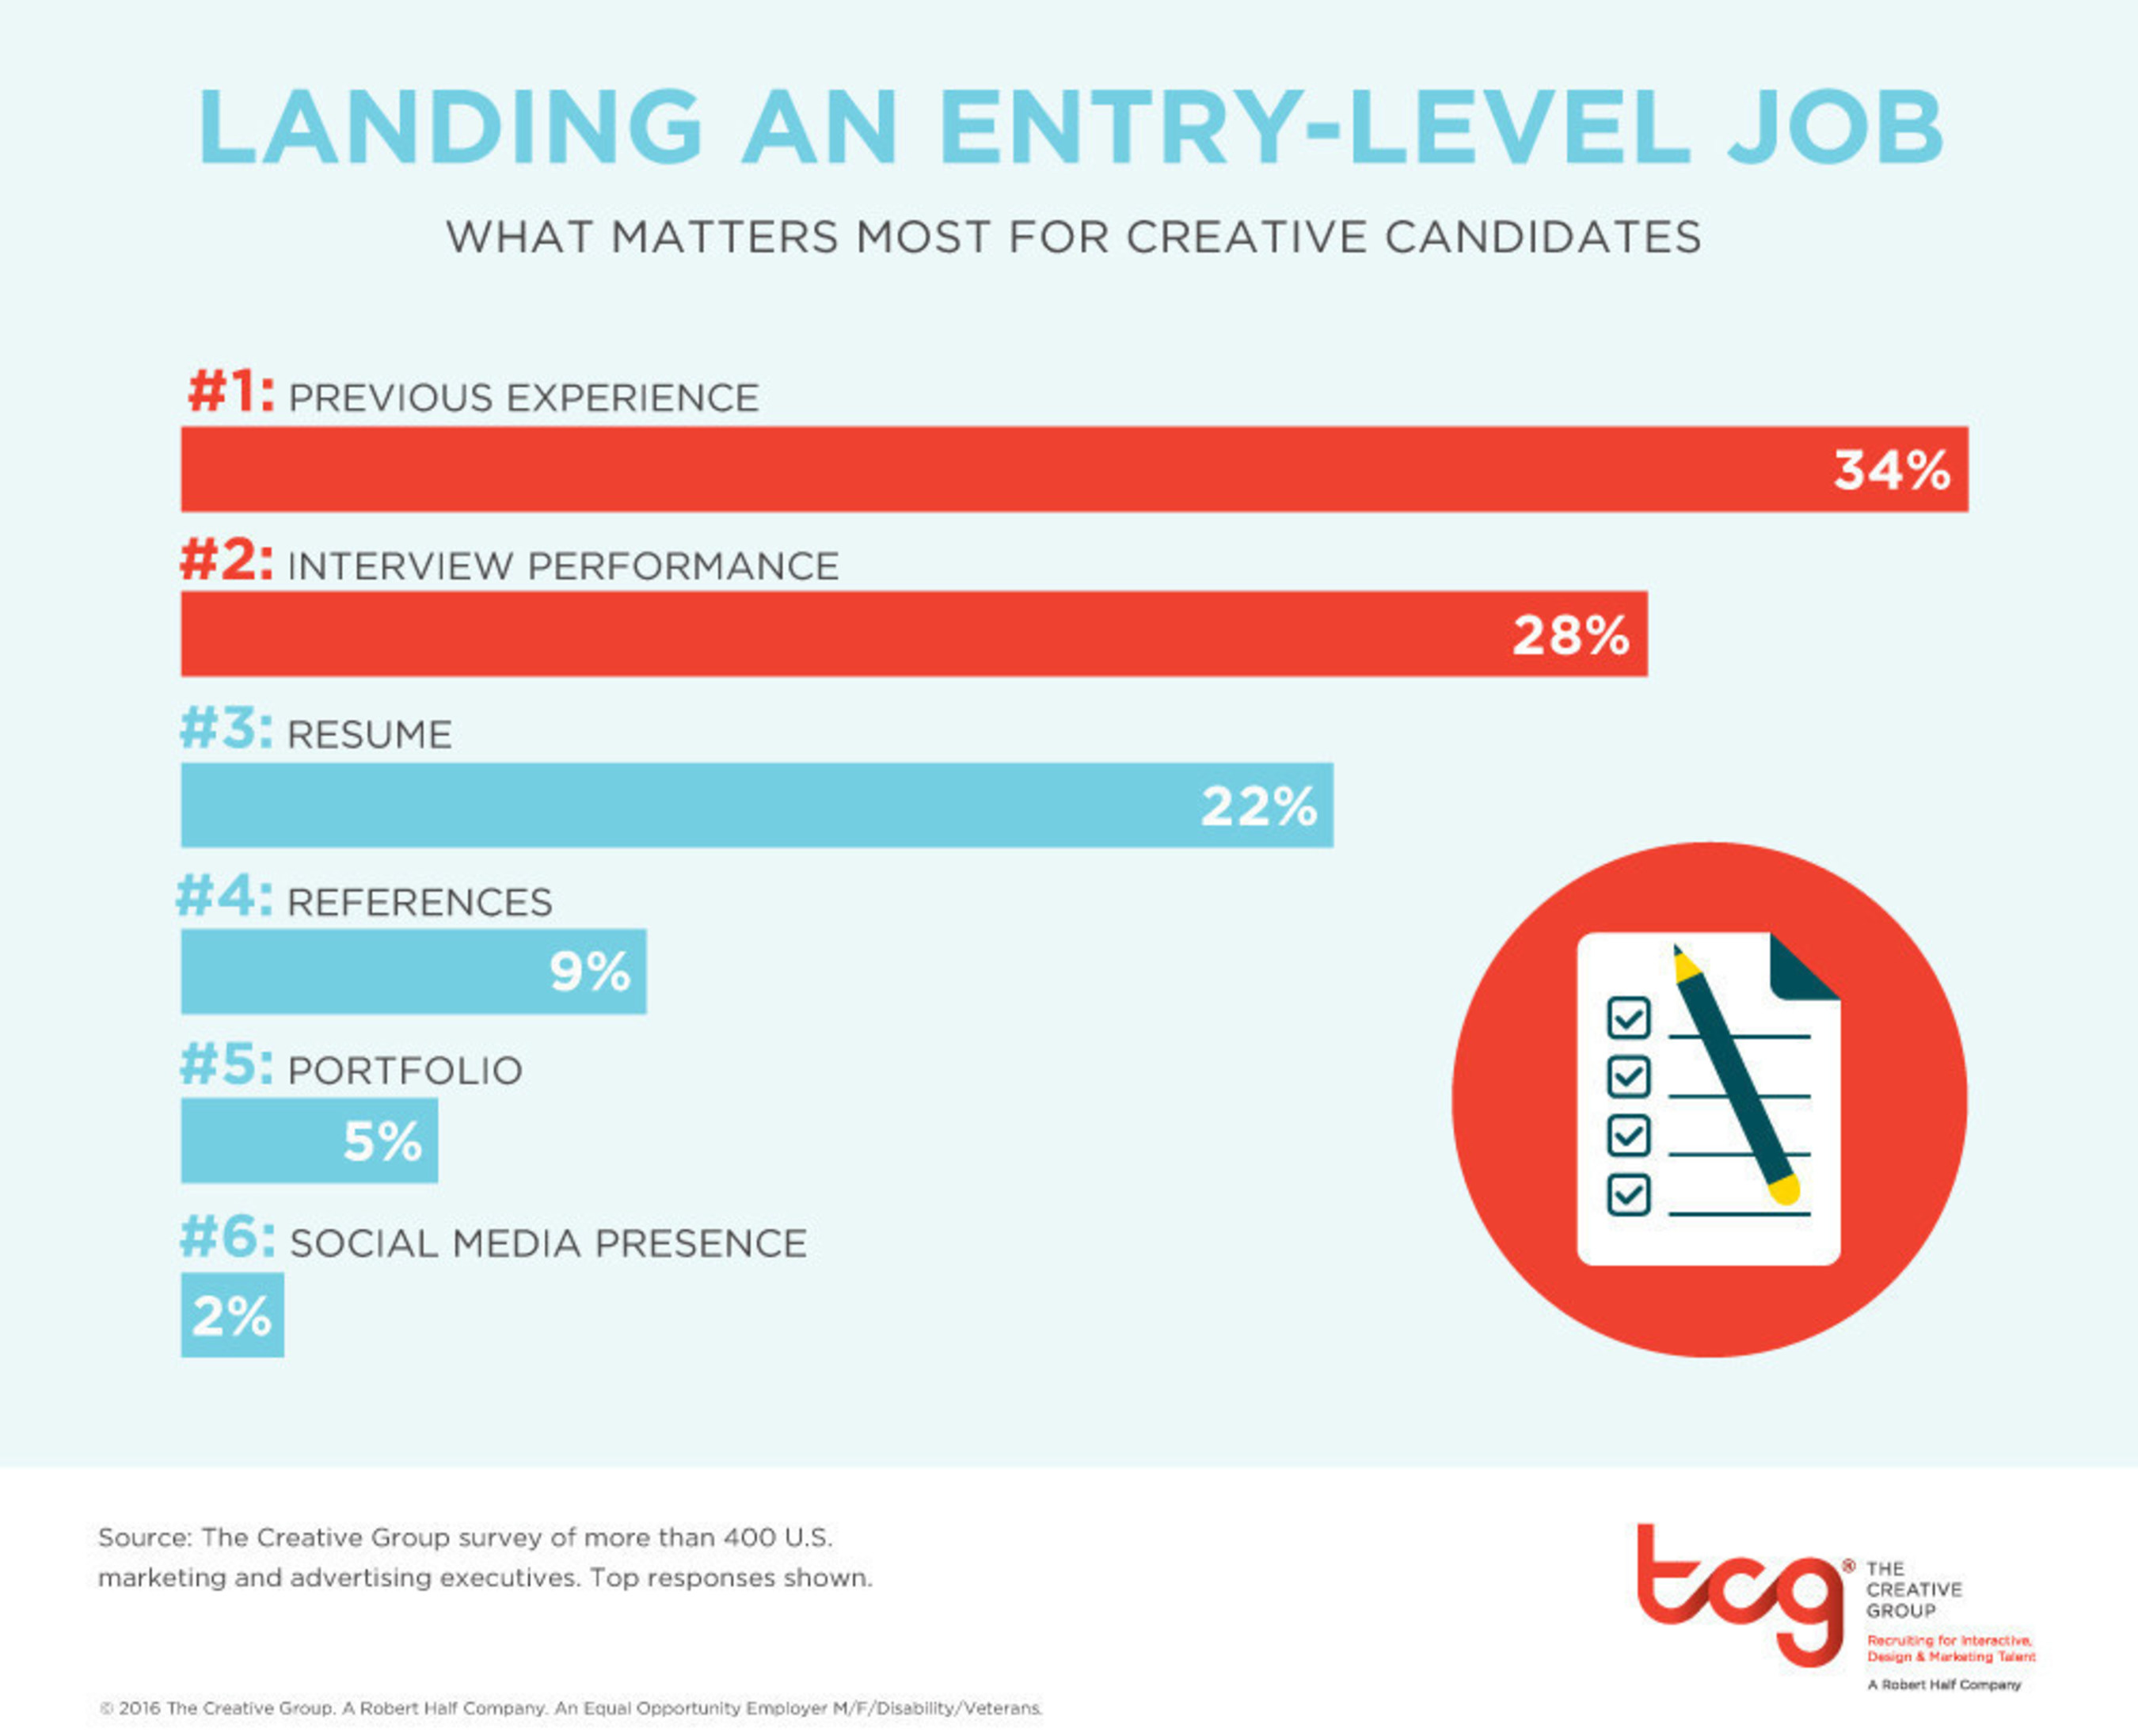 Research from The Creative Group shows work experience is critical to landing an entry-level creative job